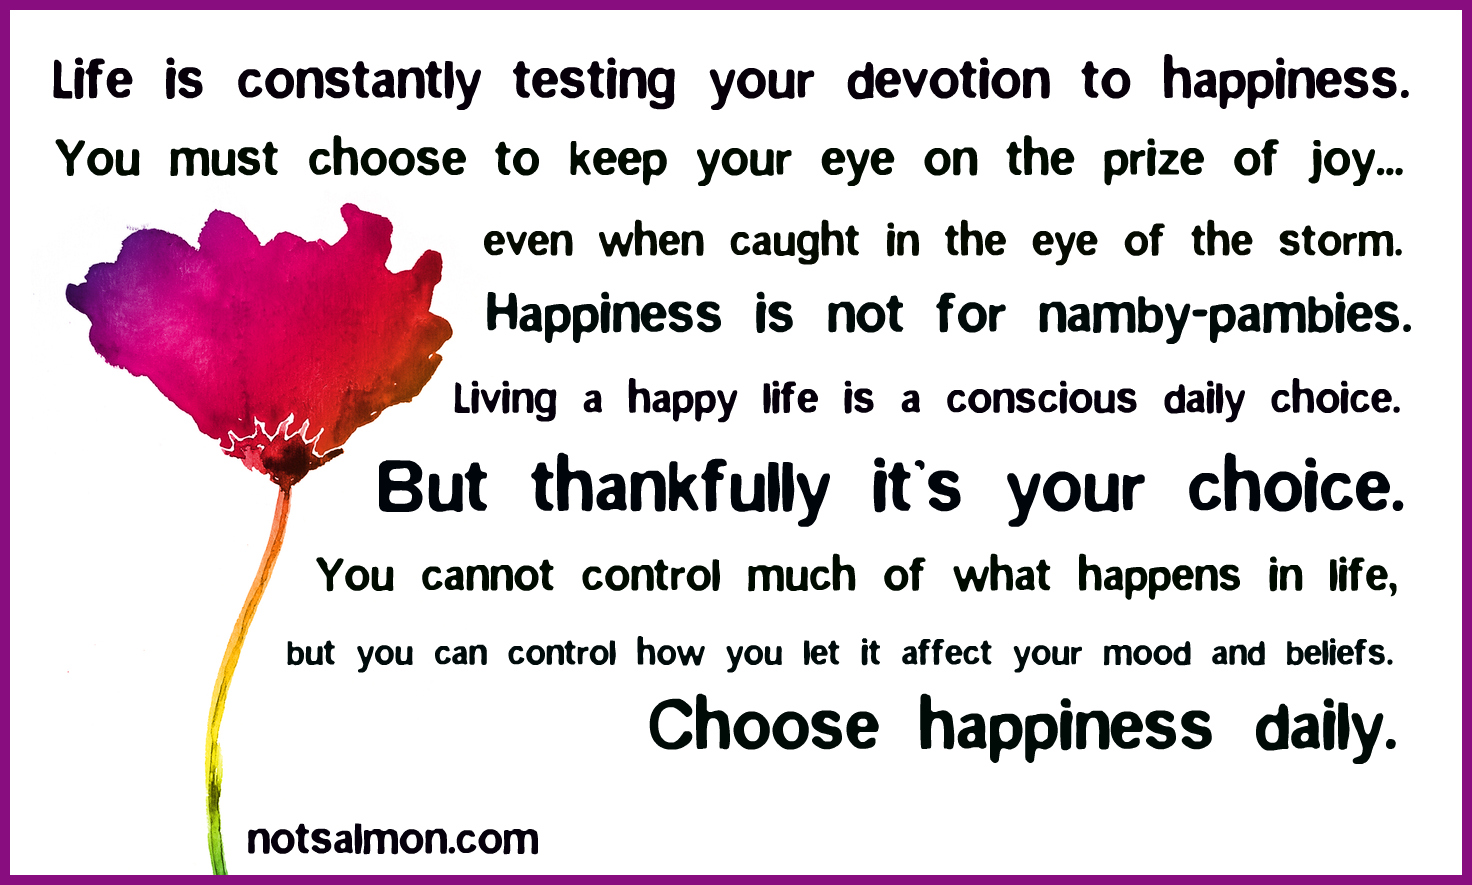 poster-choose-happiness-daily-watercolor.jpg